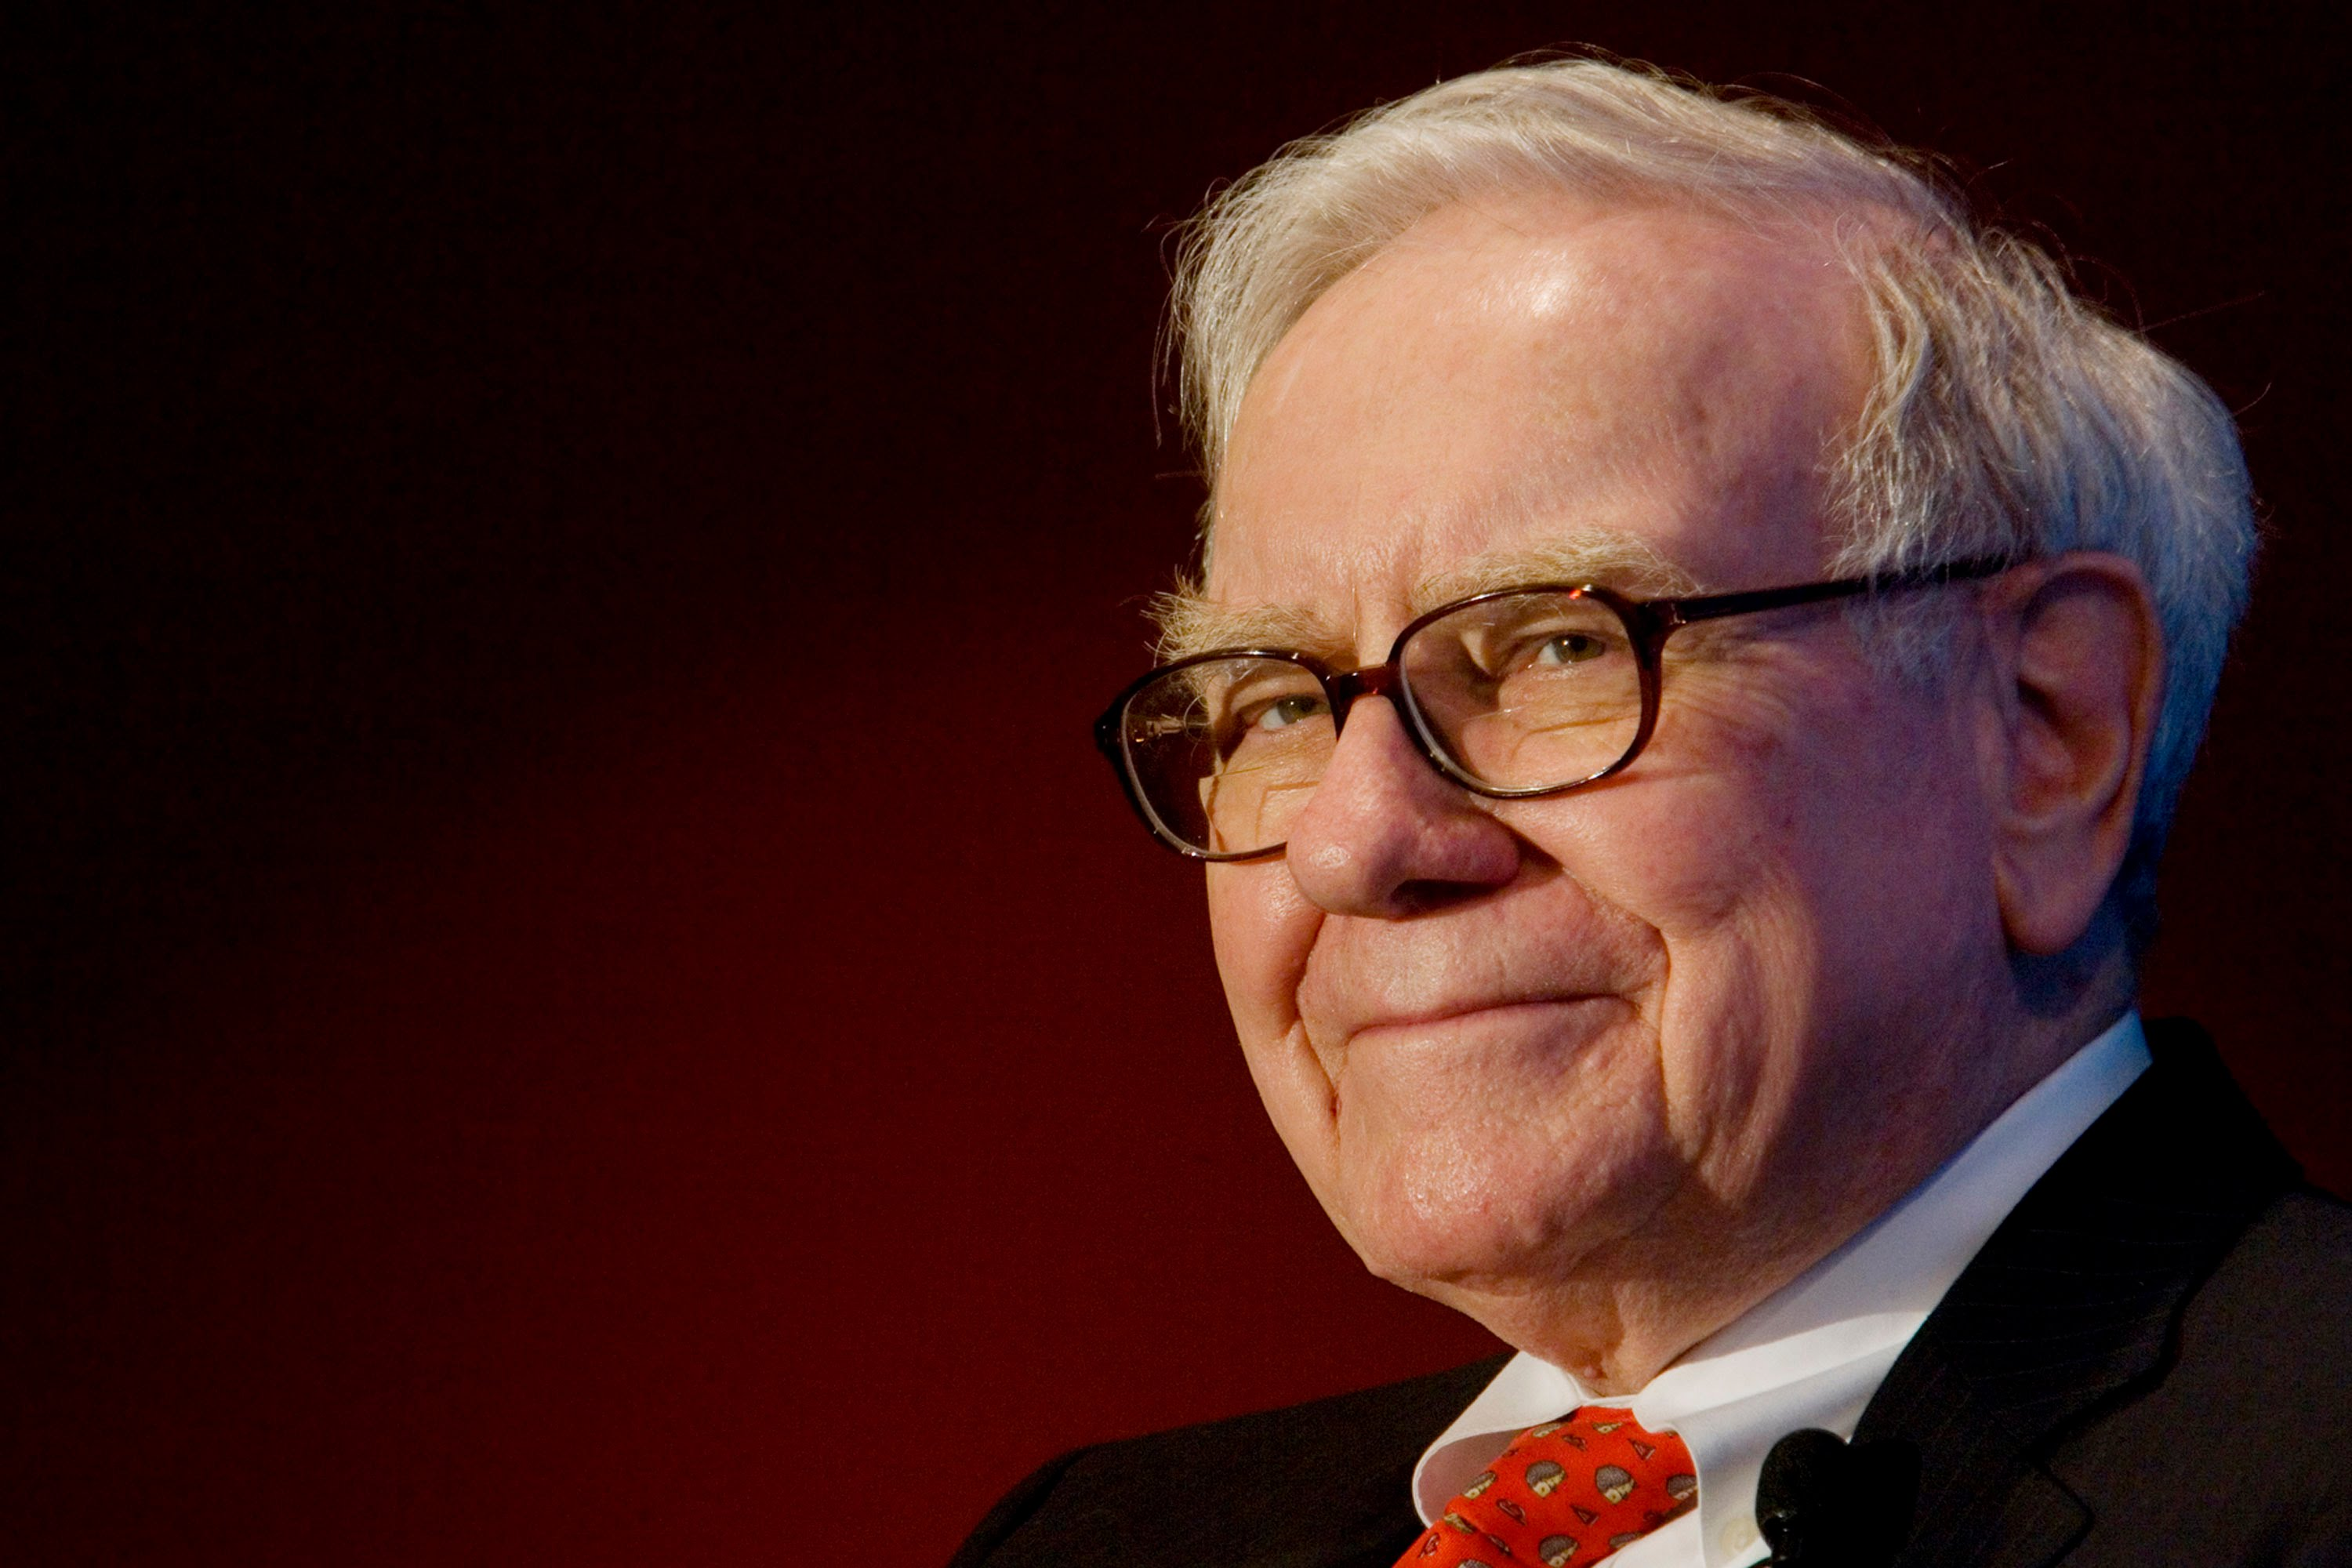 Warren Buffett: More money made by Wall Street through sales abilities than investment skills